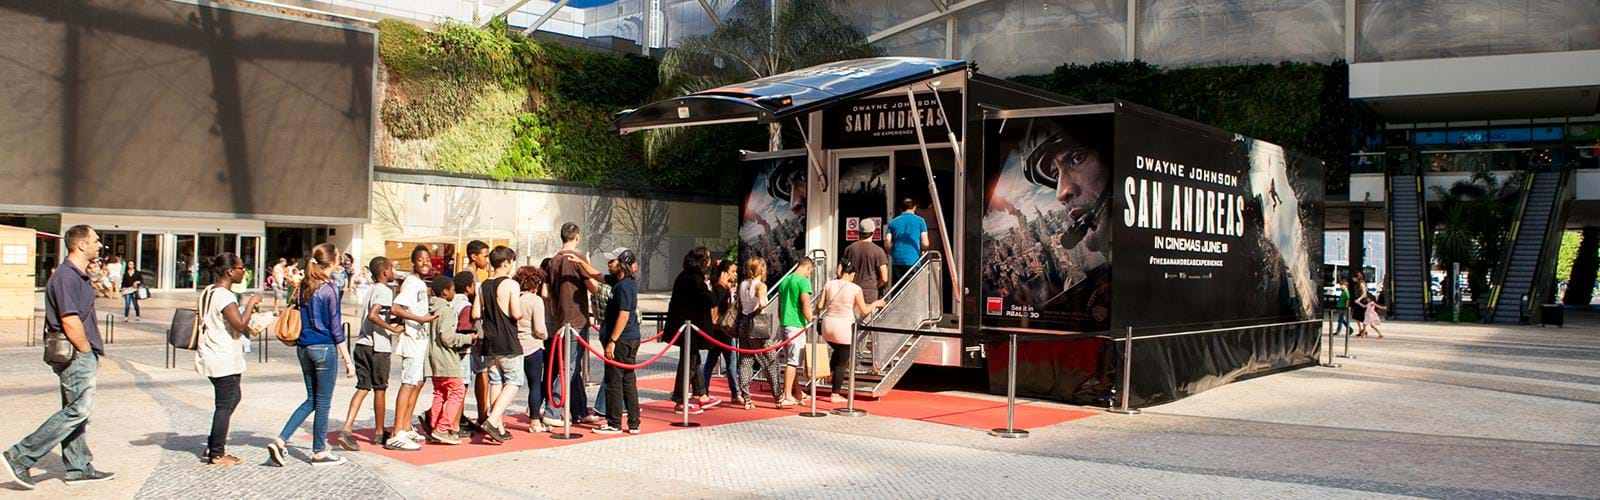 Warner Bros San Andreas Roadshow Truck B8 (1)